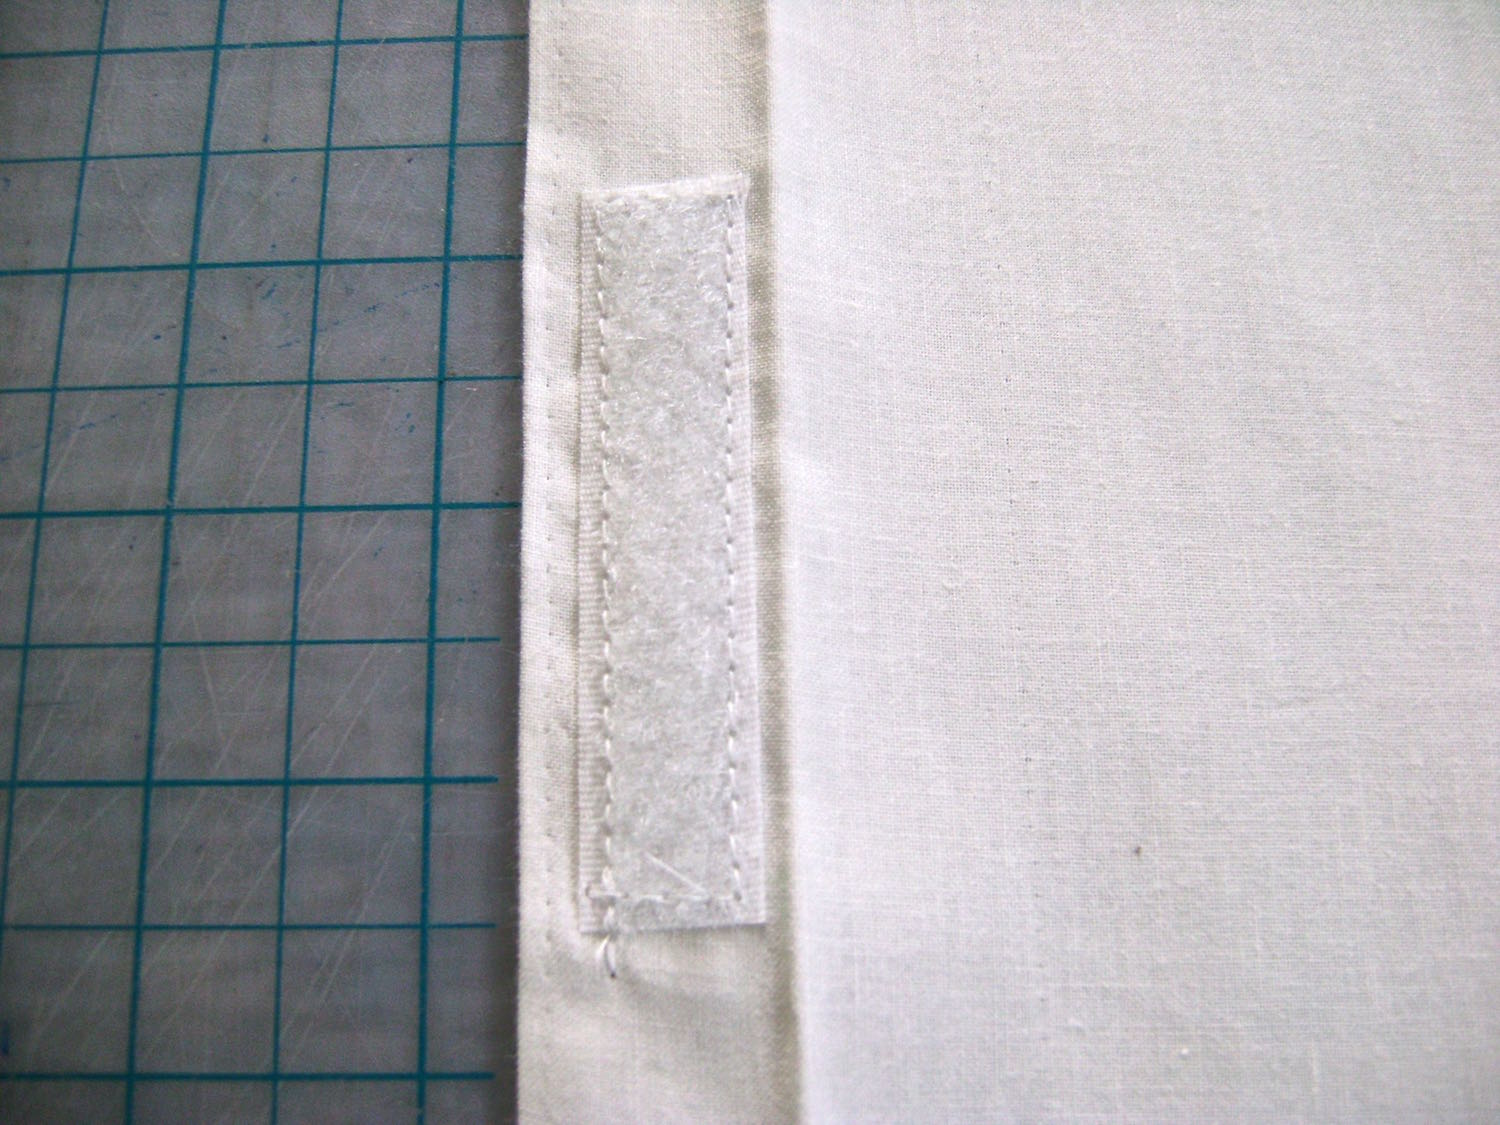 """step 22 - On one piece, sew one half of a 3"""" Velcro strip to the center of the hem. Fold the 1"""" hem over again and sew close to the edge the entire length of the fabric. The piece should now measure 7.75"""" x 13.25."""